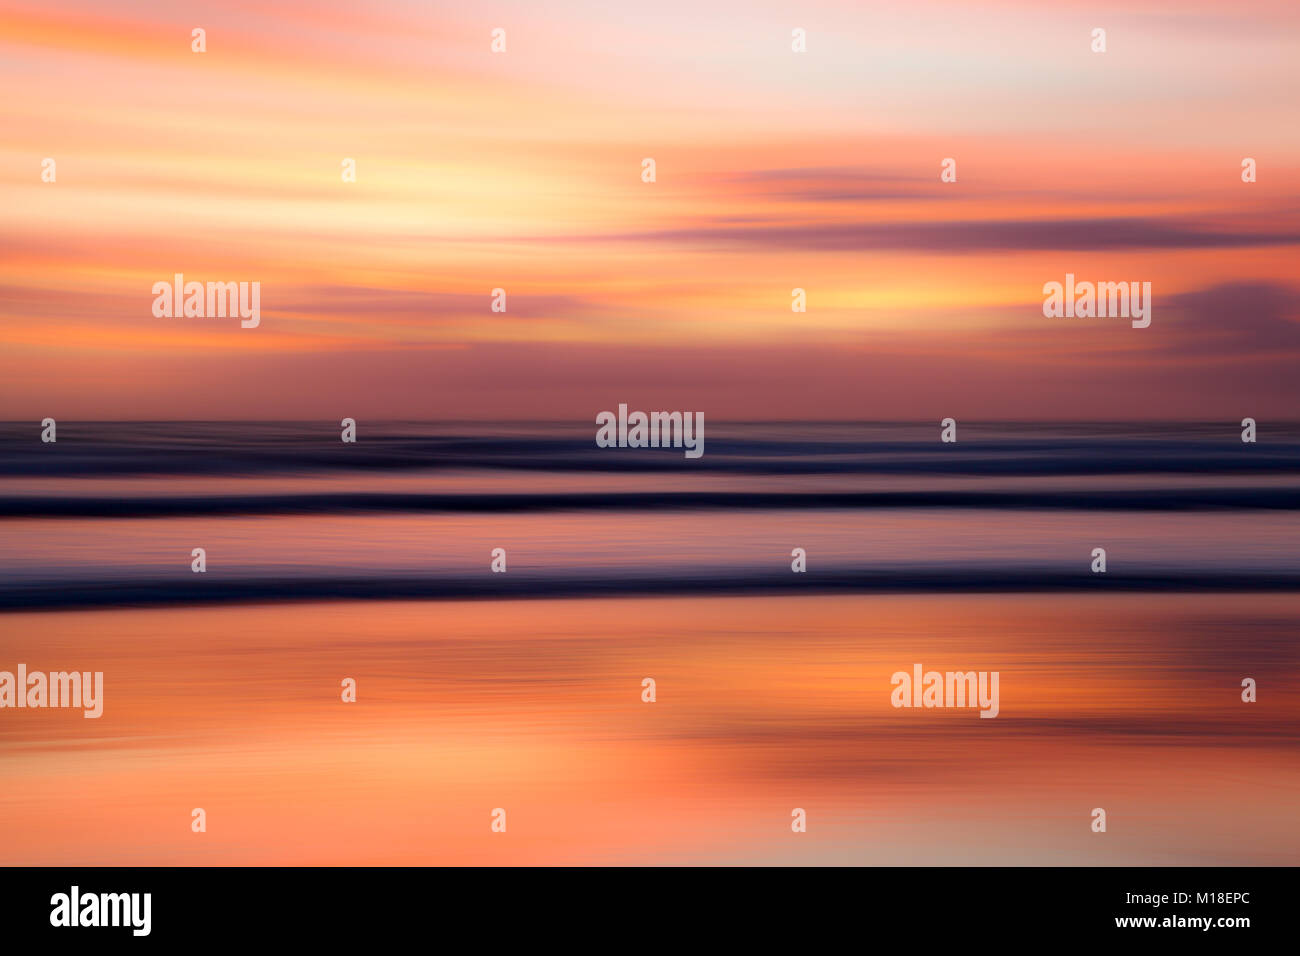 Motion blur of ocean and waves with a colourful sunrise. - Stock Image